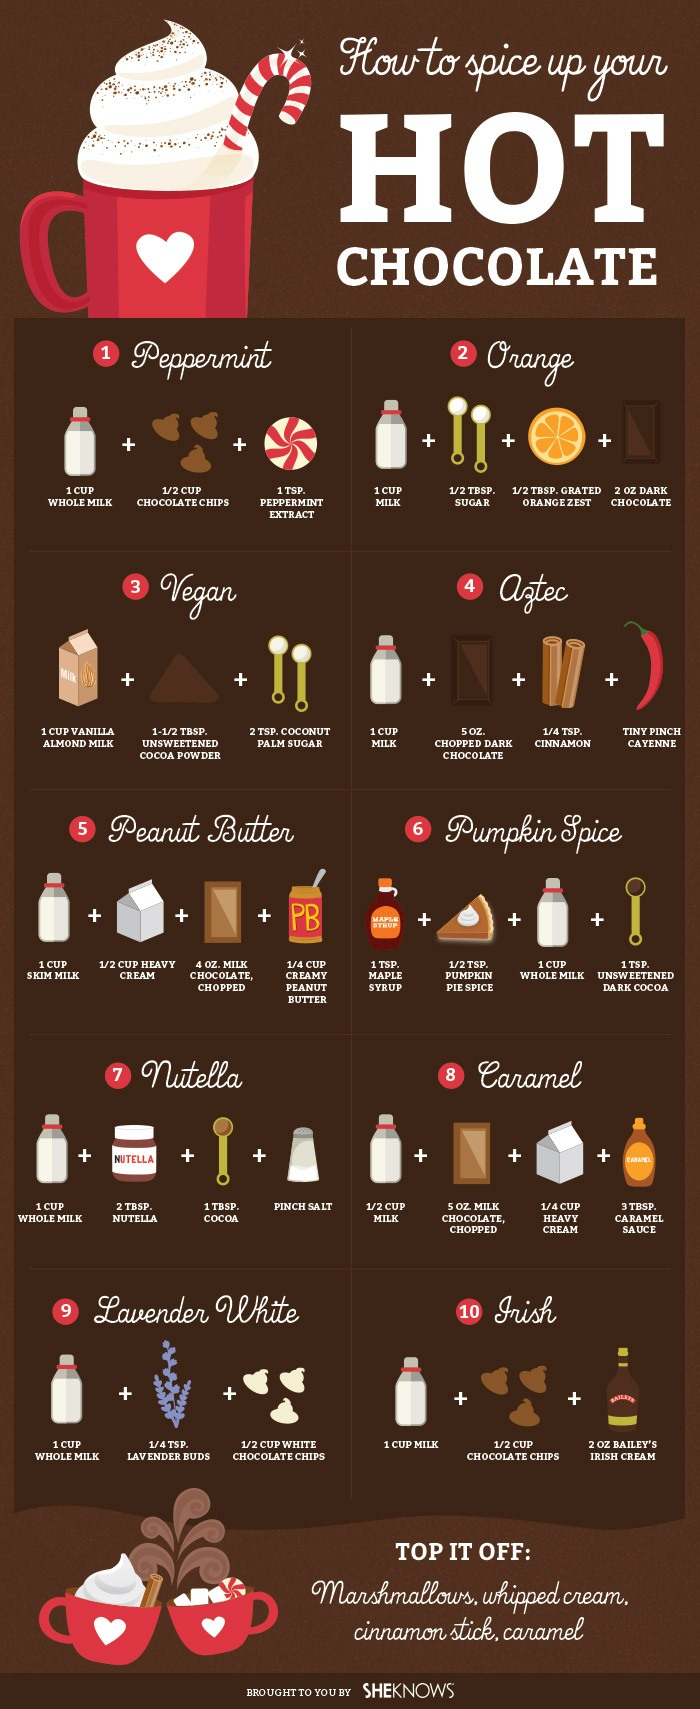 HotChocolateInfographic